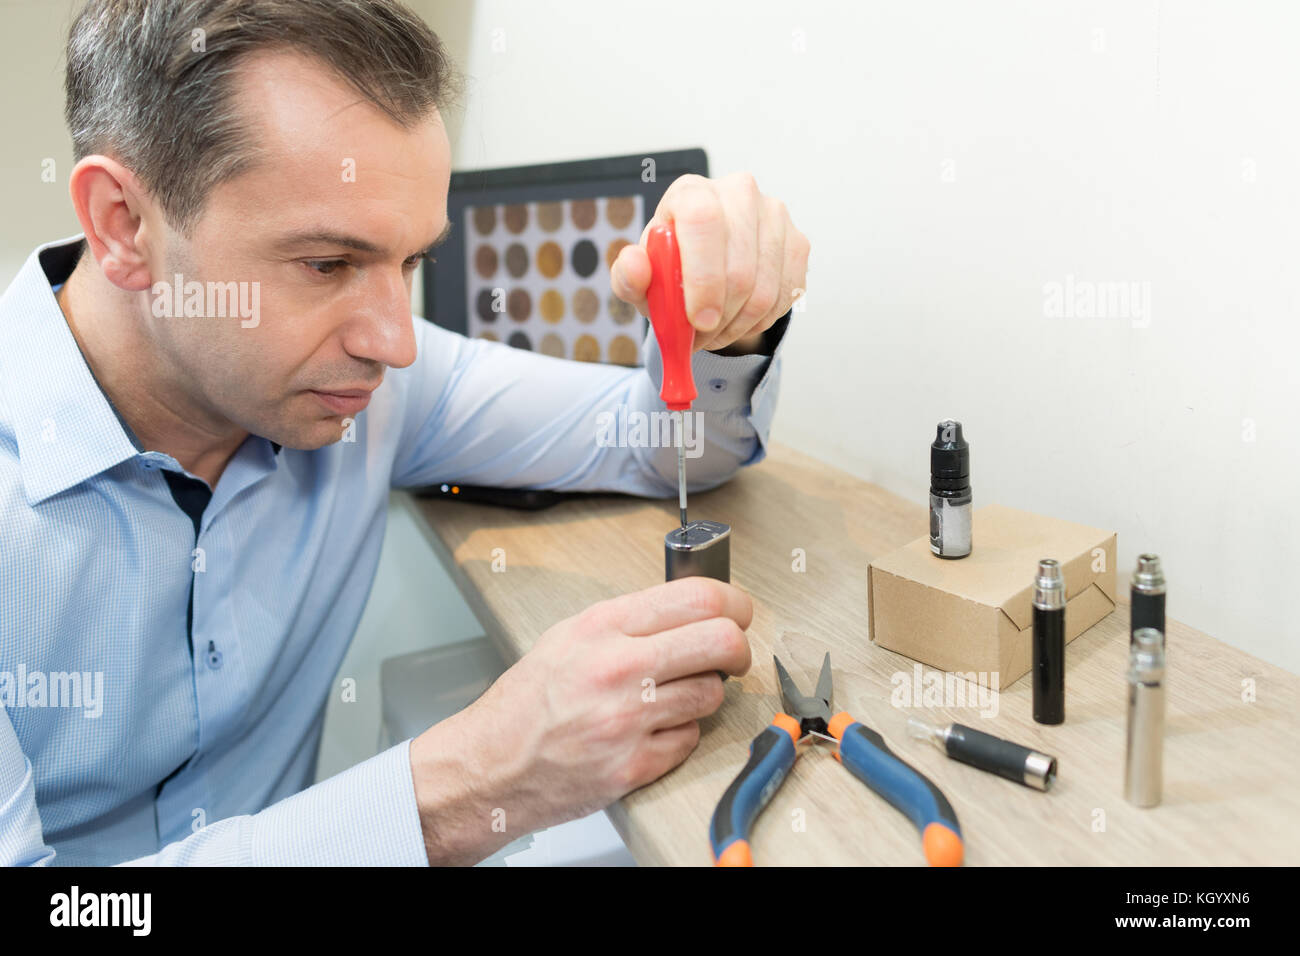 man setting up electronic cigarette coil - Stock Image